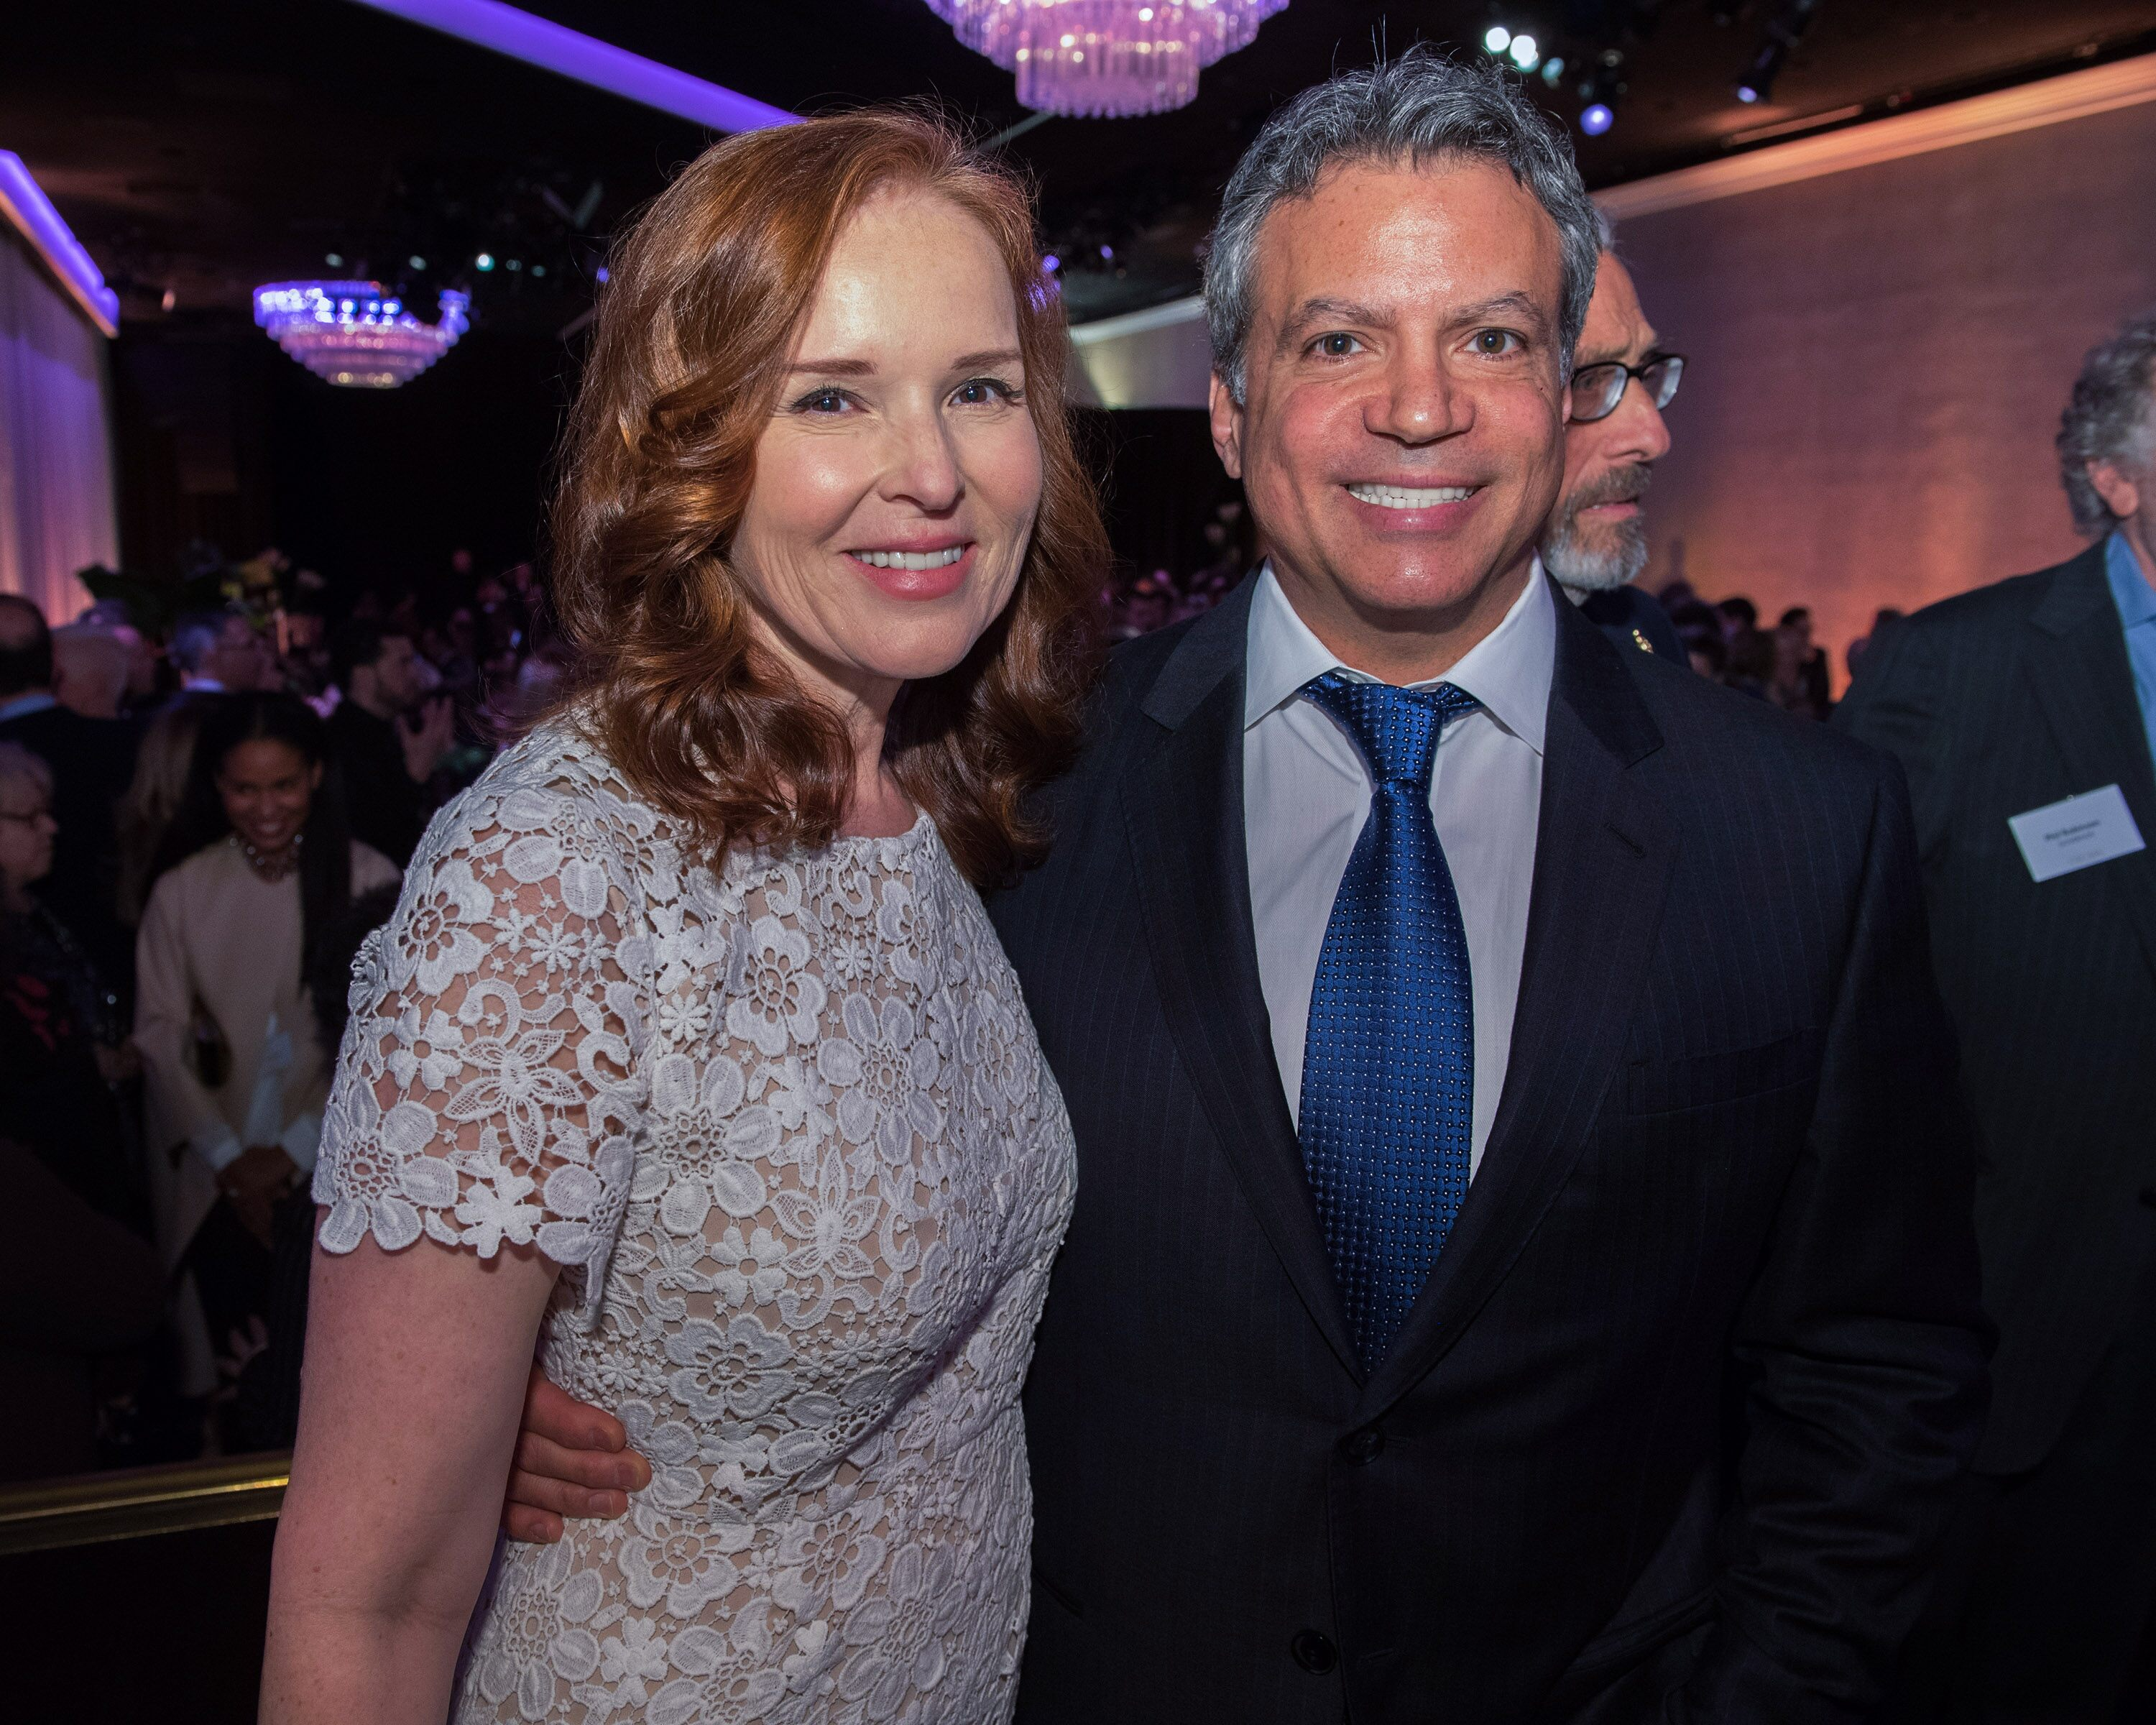 89th Oscars producers Jennifer Todd and Michael De Luca